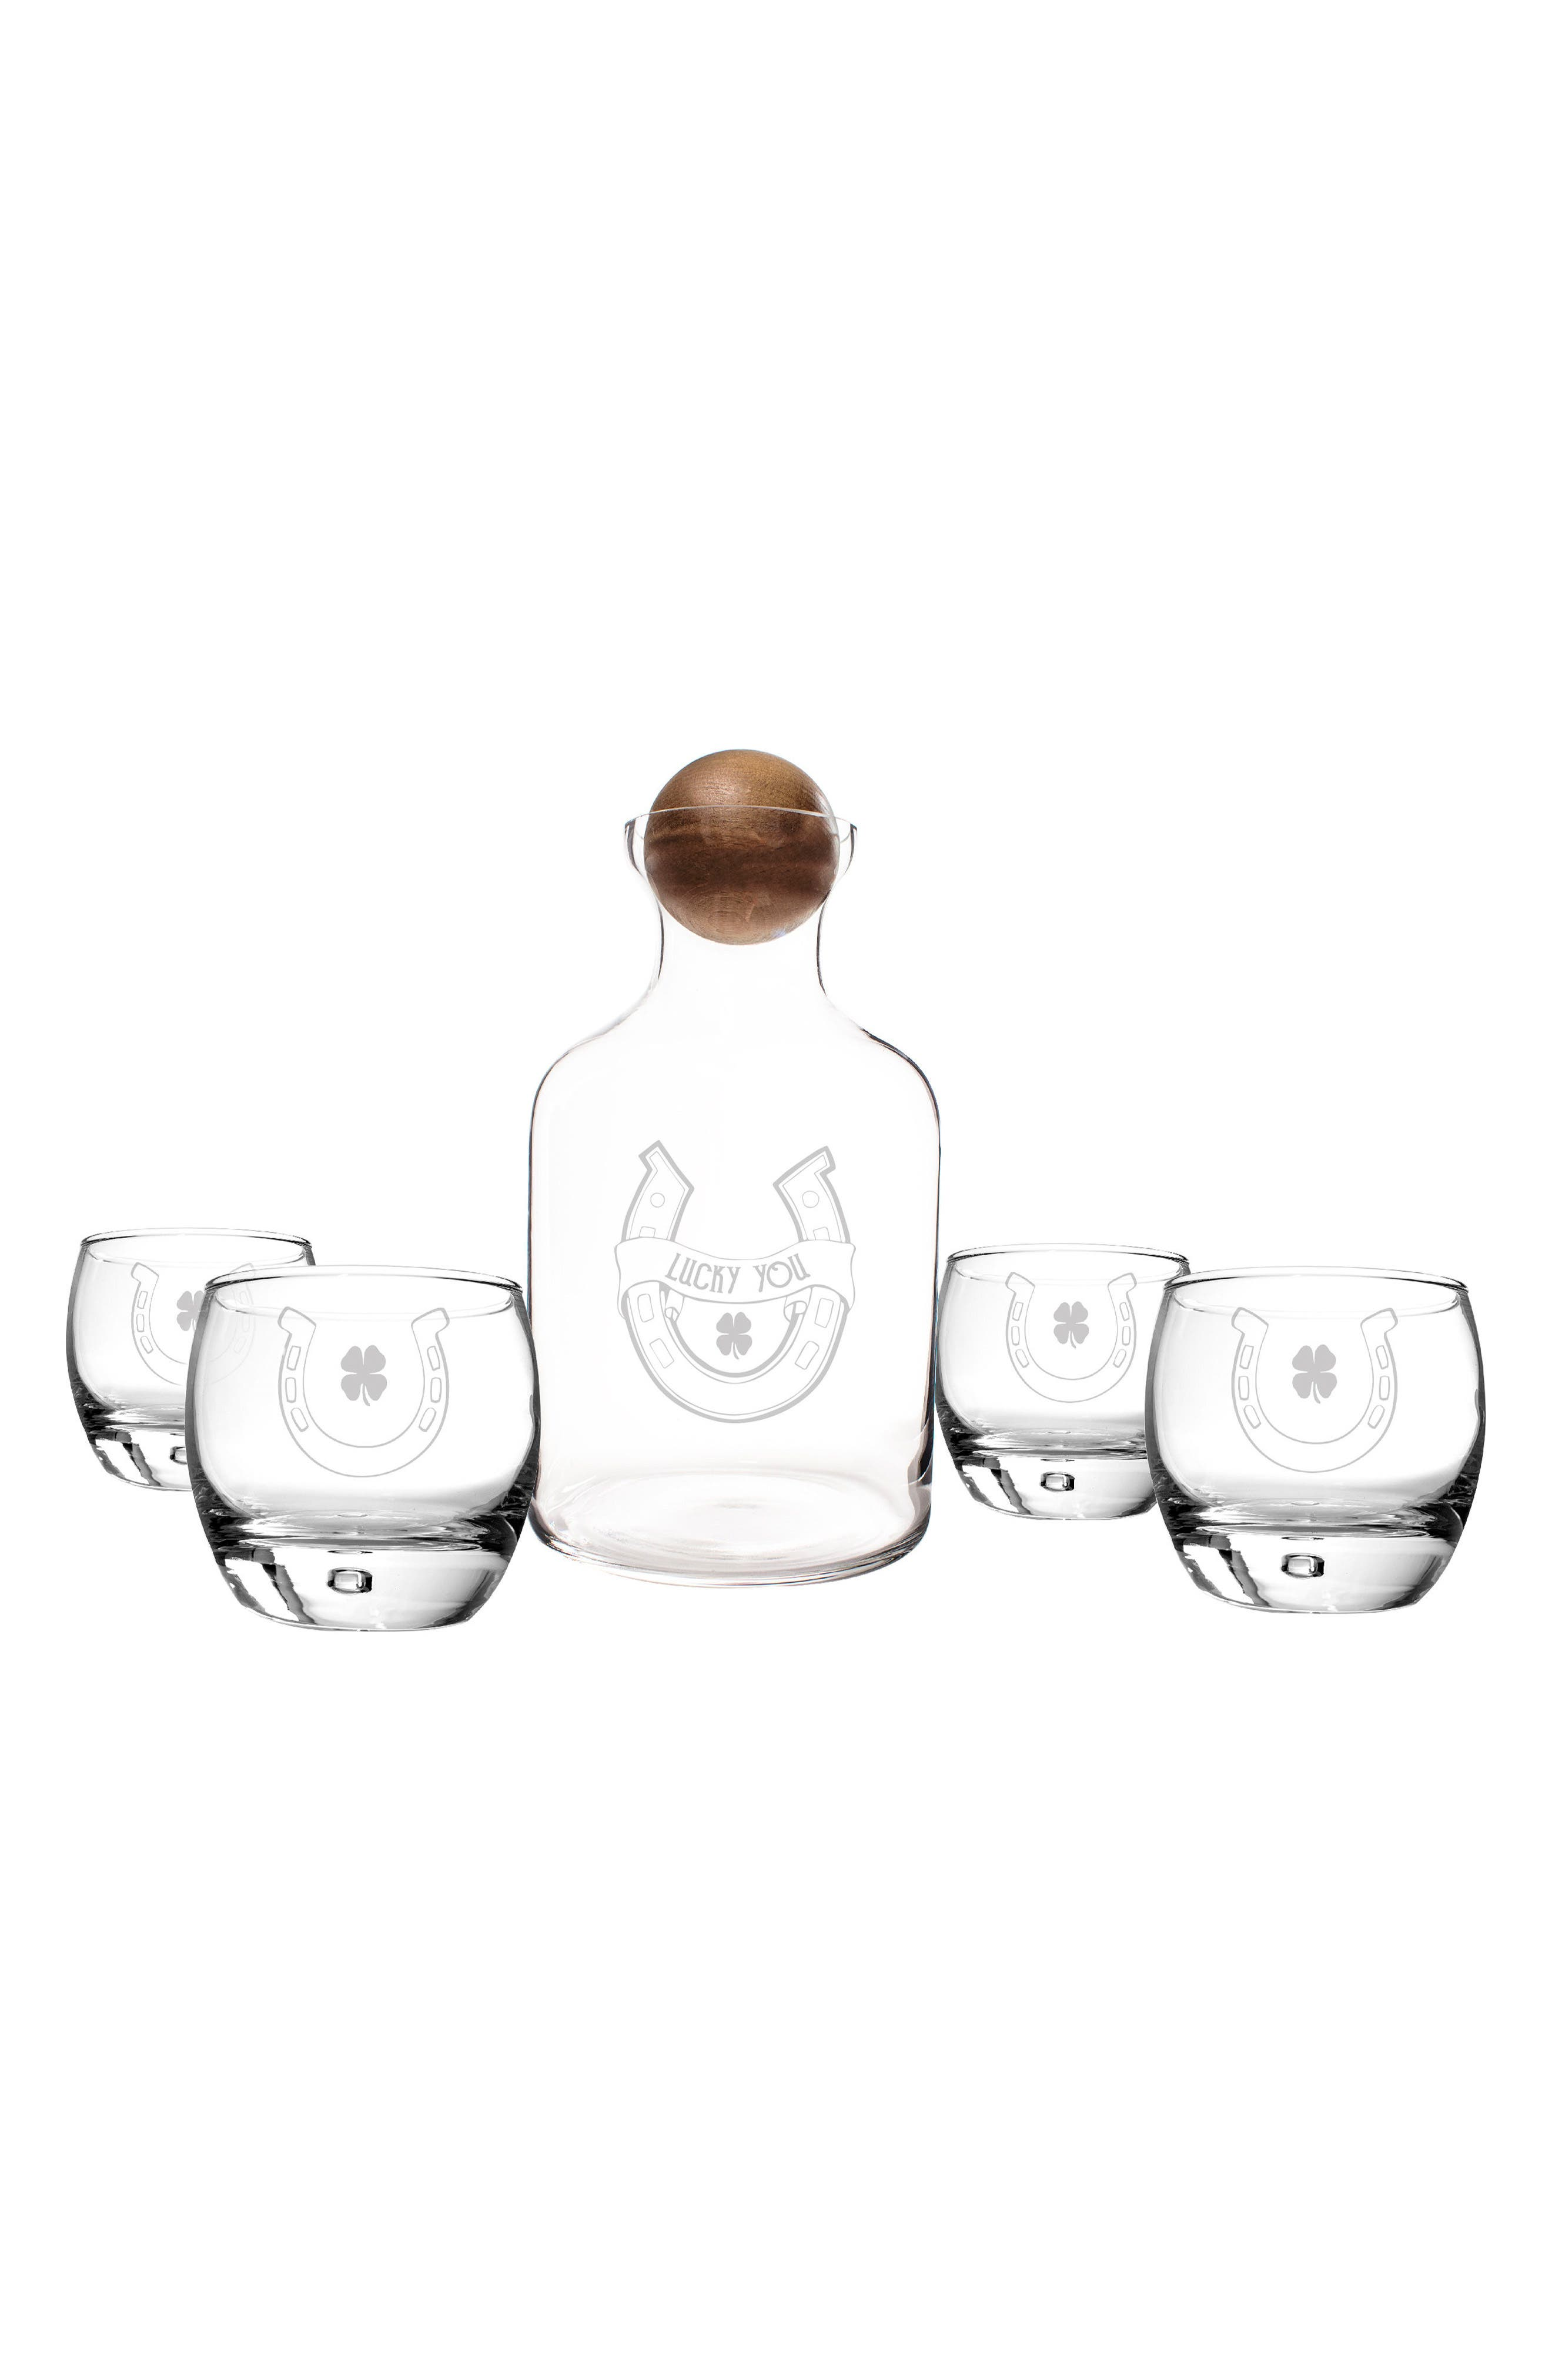 Lucky You Horseshoe Decanter & Set of Four Glasses,                             Main thumbnail 1, color,                             100